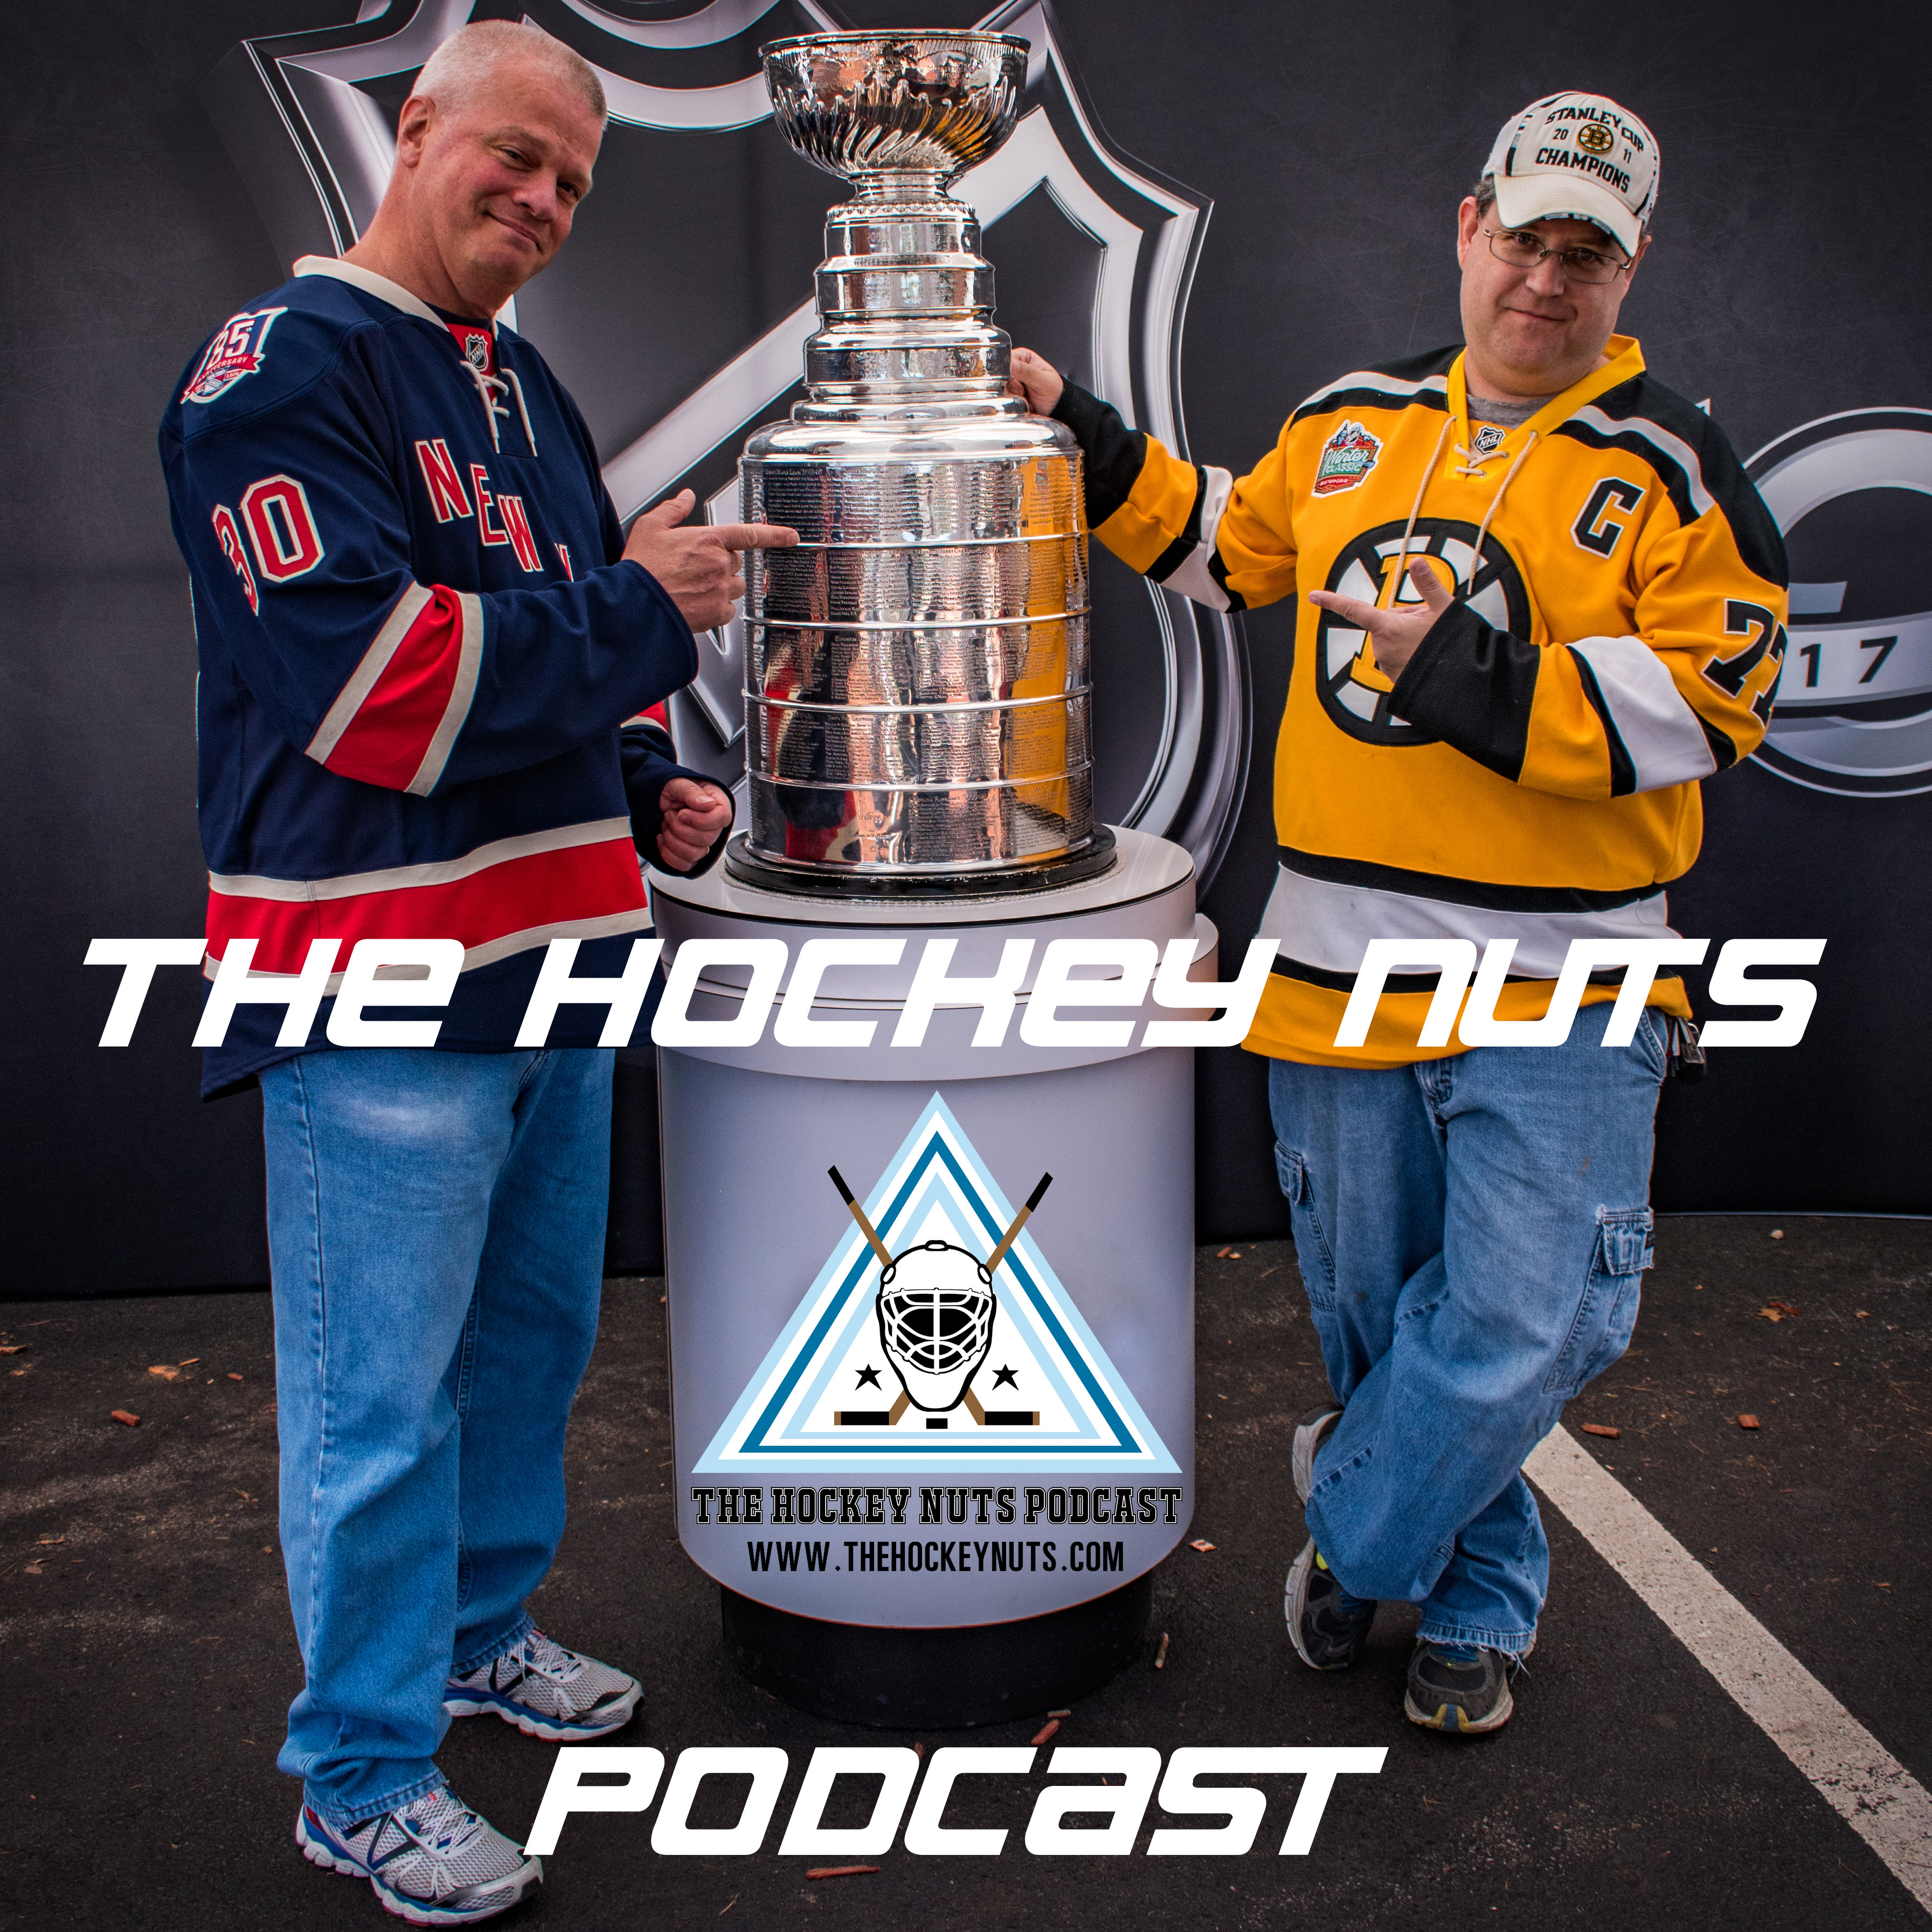 566632172 TheHockeyNuts.com - Fan community for the best game on Earth